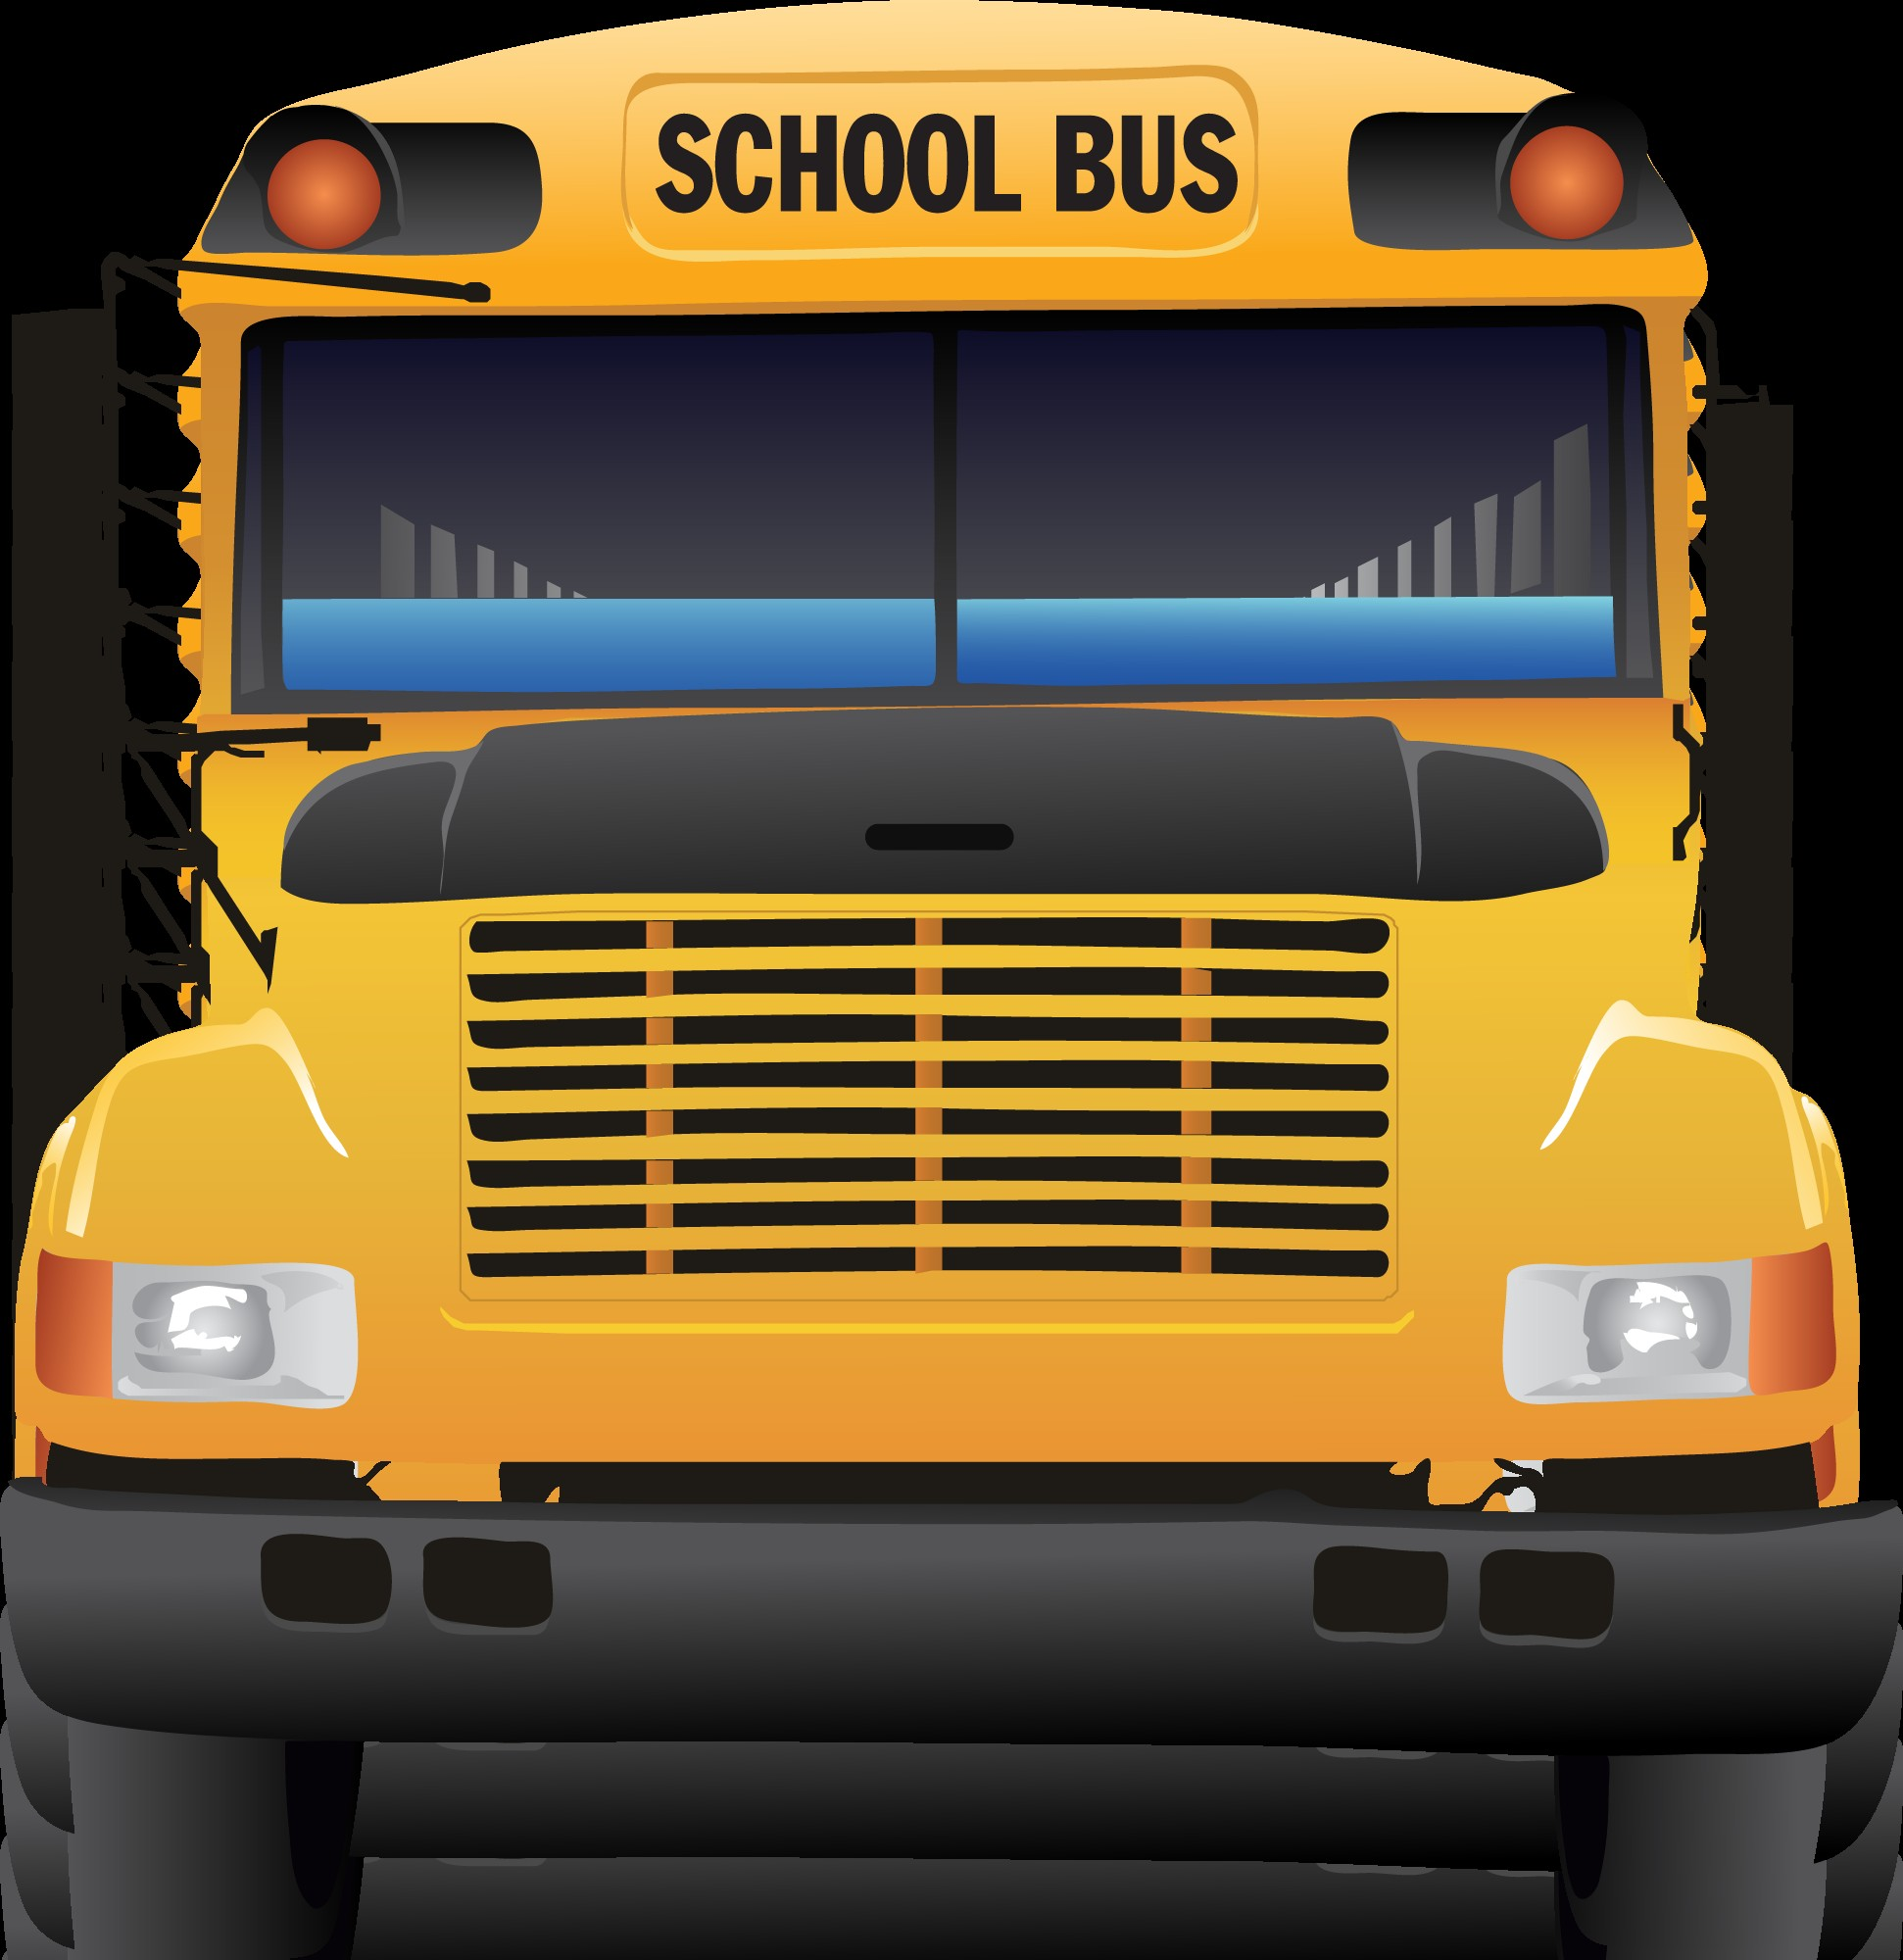 Bus clipart school outing Just Schools Everyday I Allegan